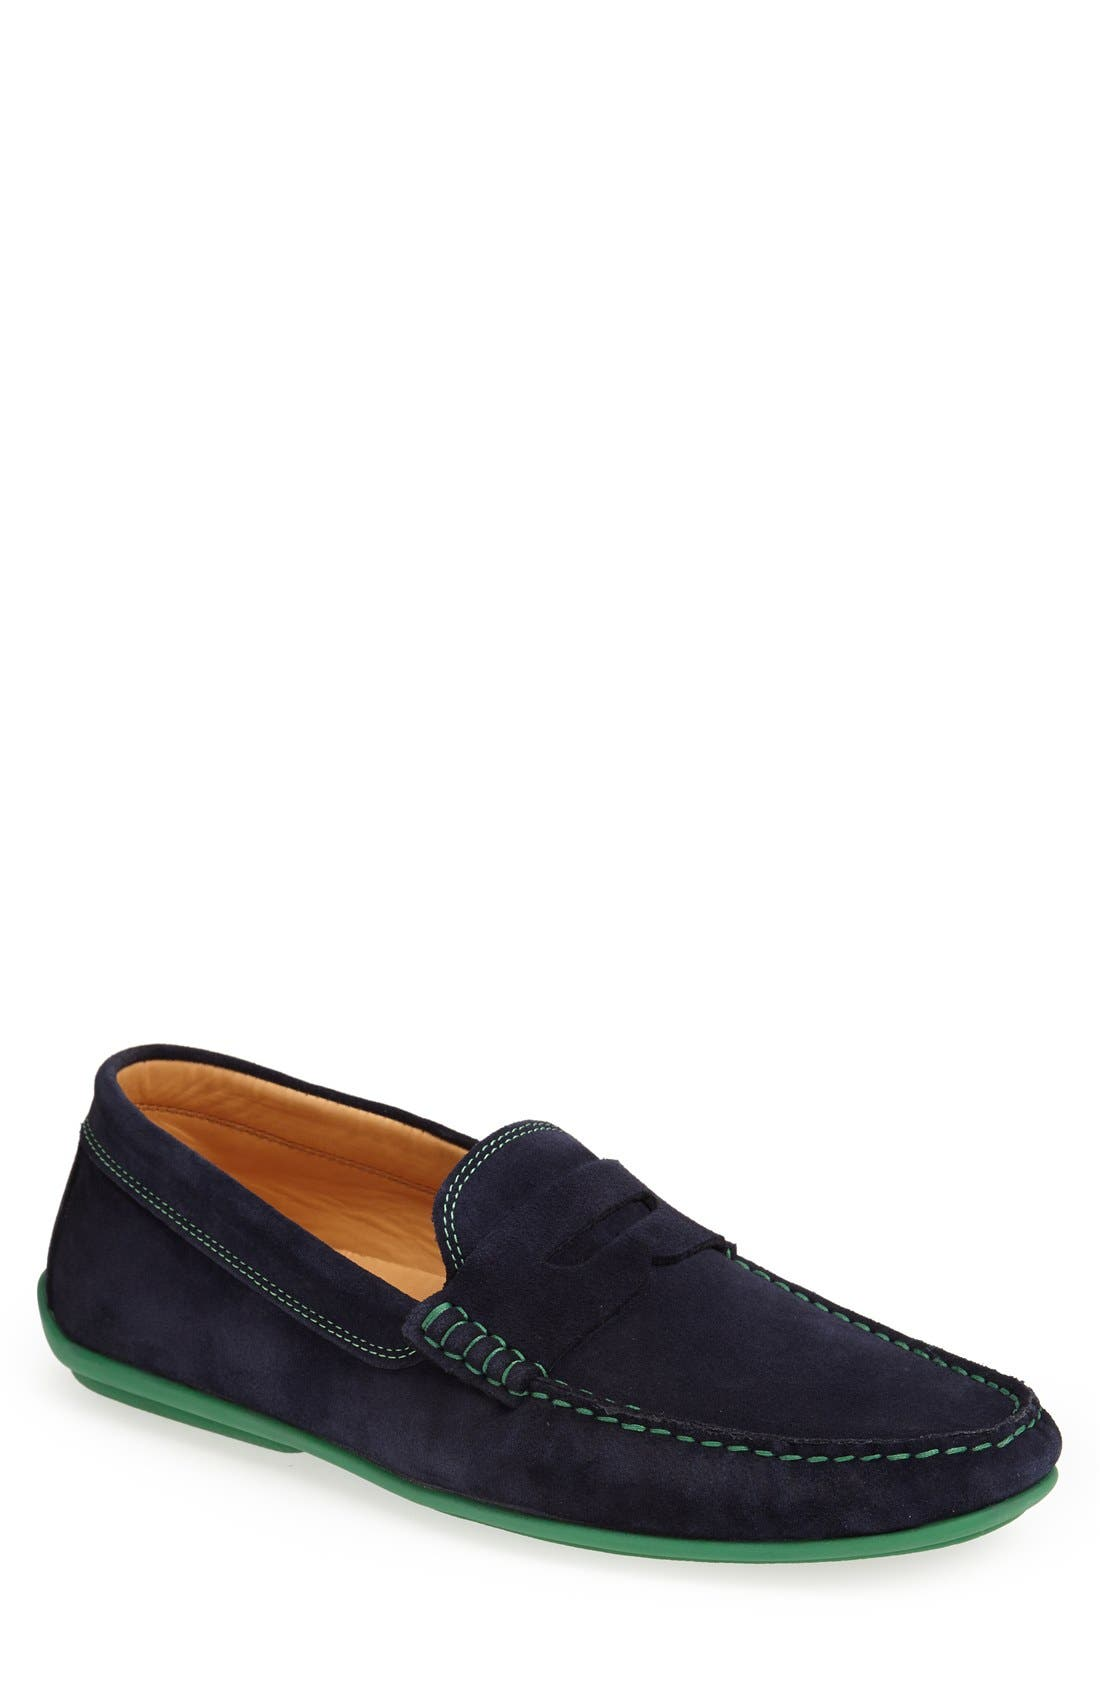 'Chathams' Penny Loafer,                             Main thumbnail 1, color,                             Navy Suede/ Green